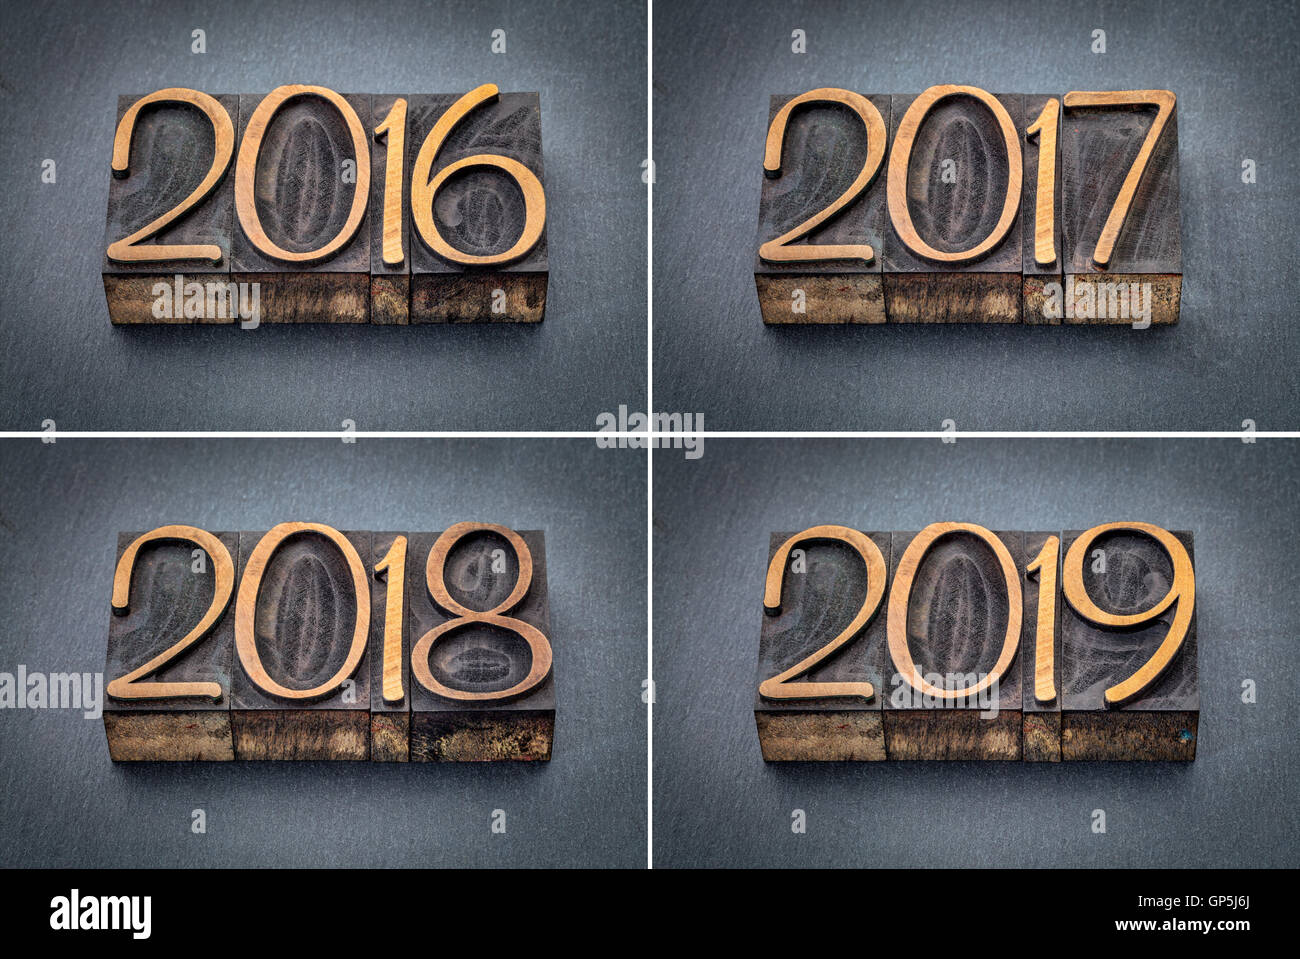 year 2016, 2017, 2018 and 2019 set - text in letterpress wood type against gray slate stone - Stock Image